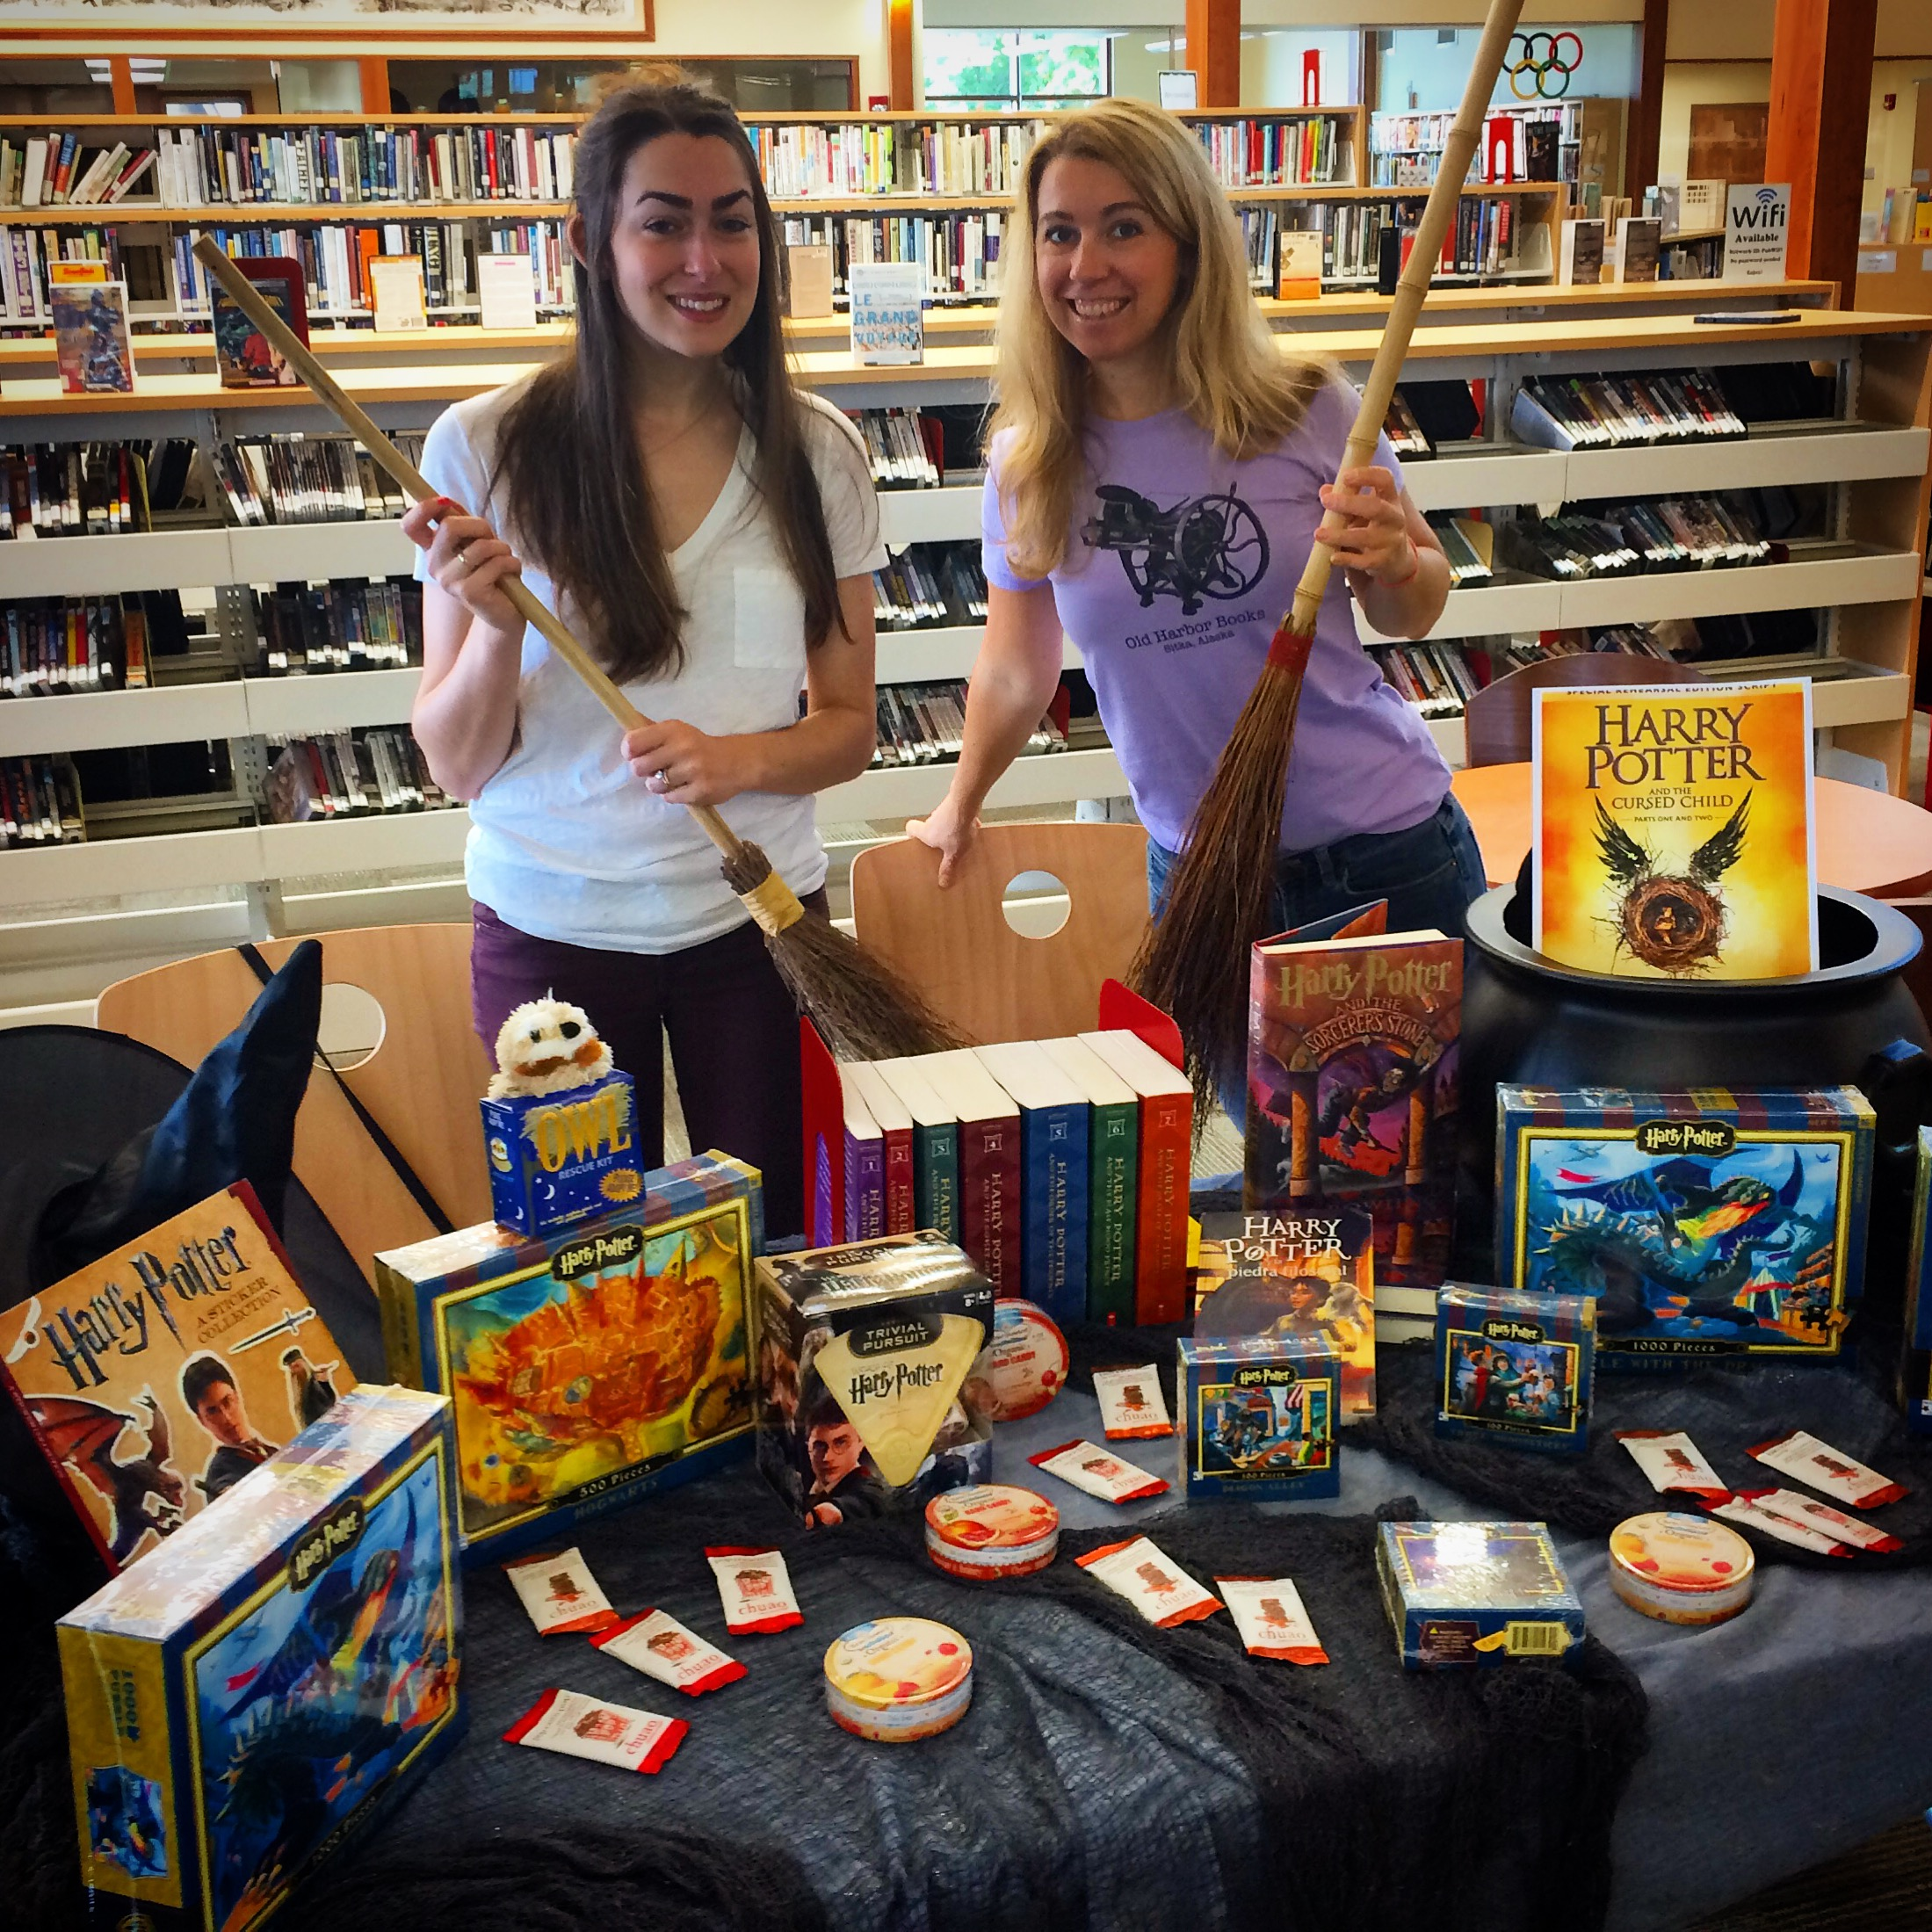 Booksellers set up for Harry Potter party.